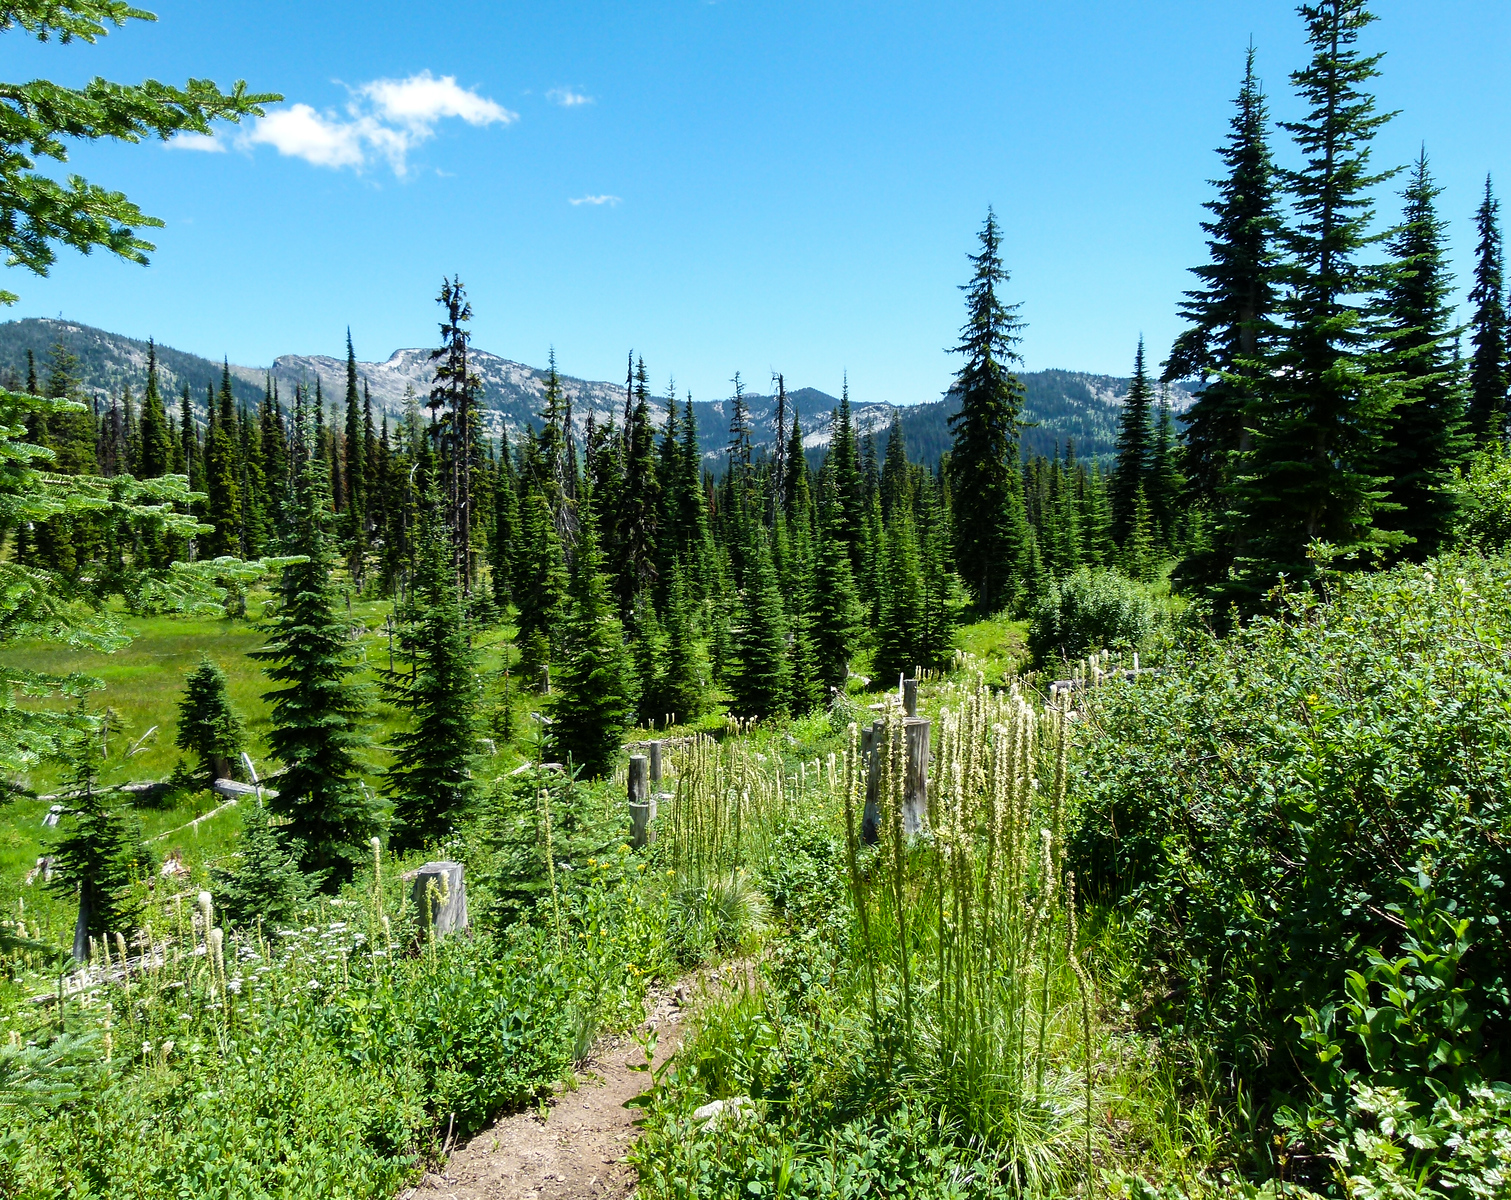 Skookum Butte Trail surrounded by the alpine scenery of the Lolo National Forest